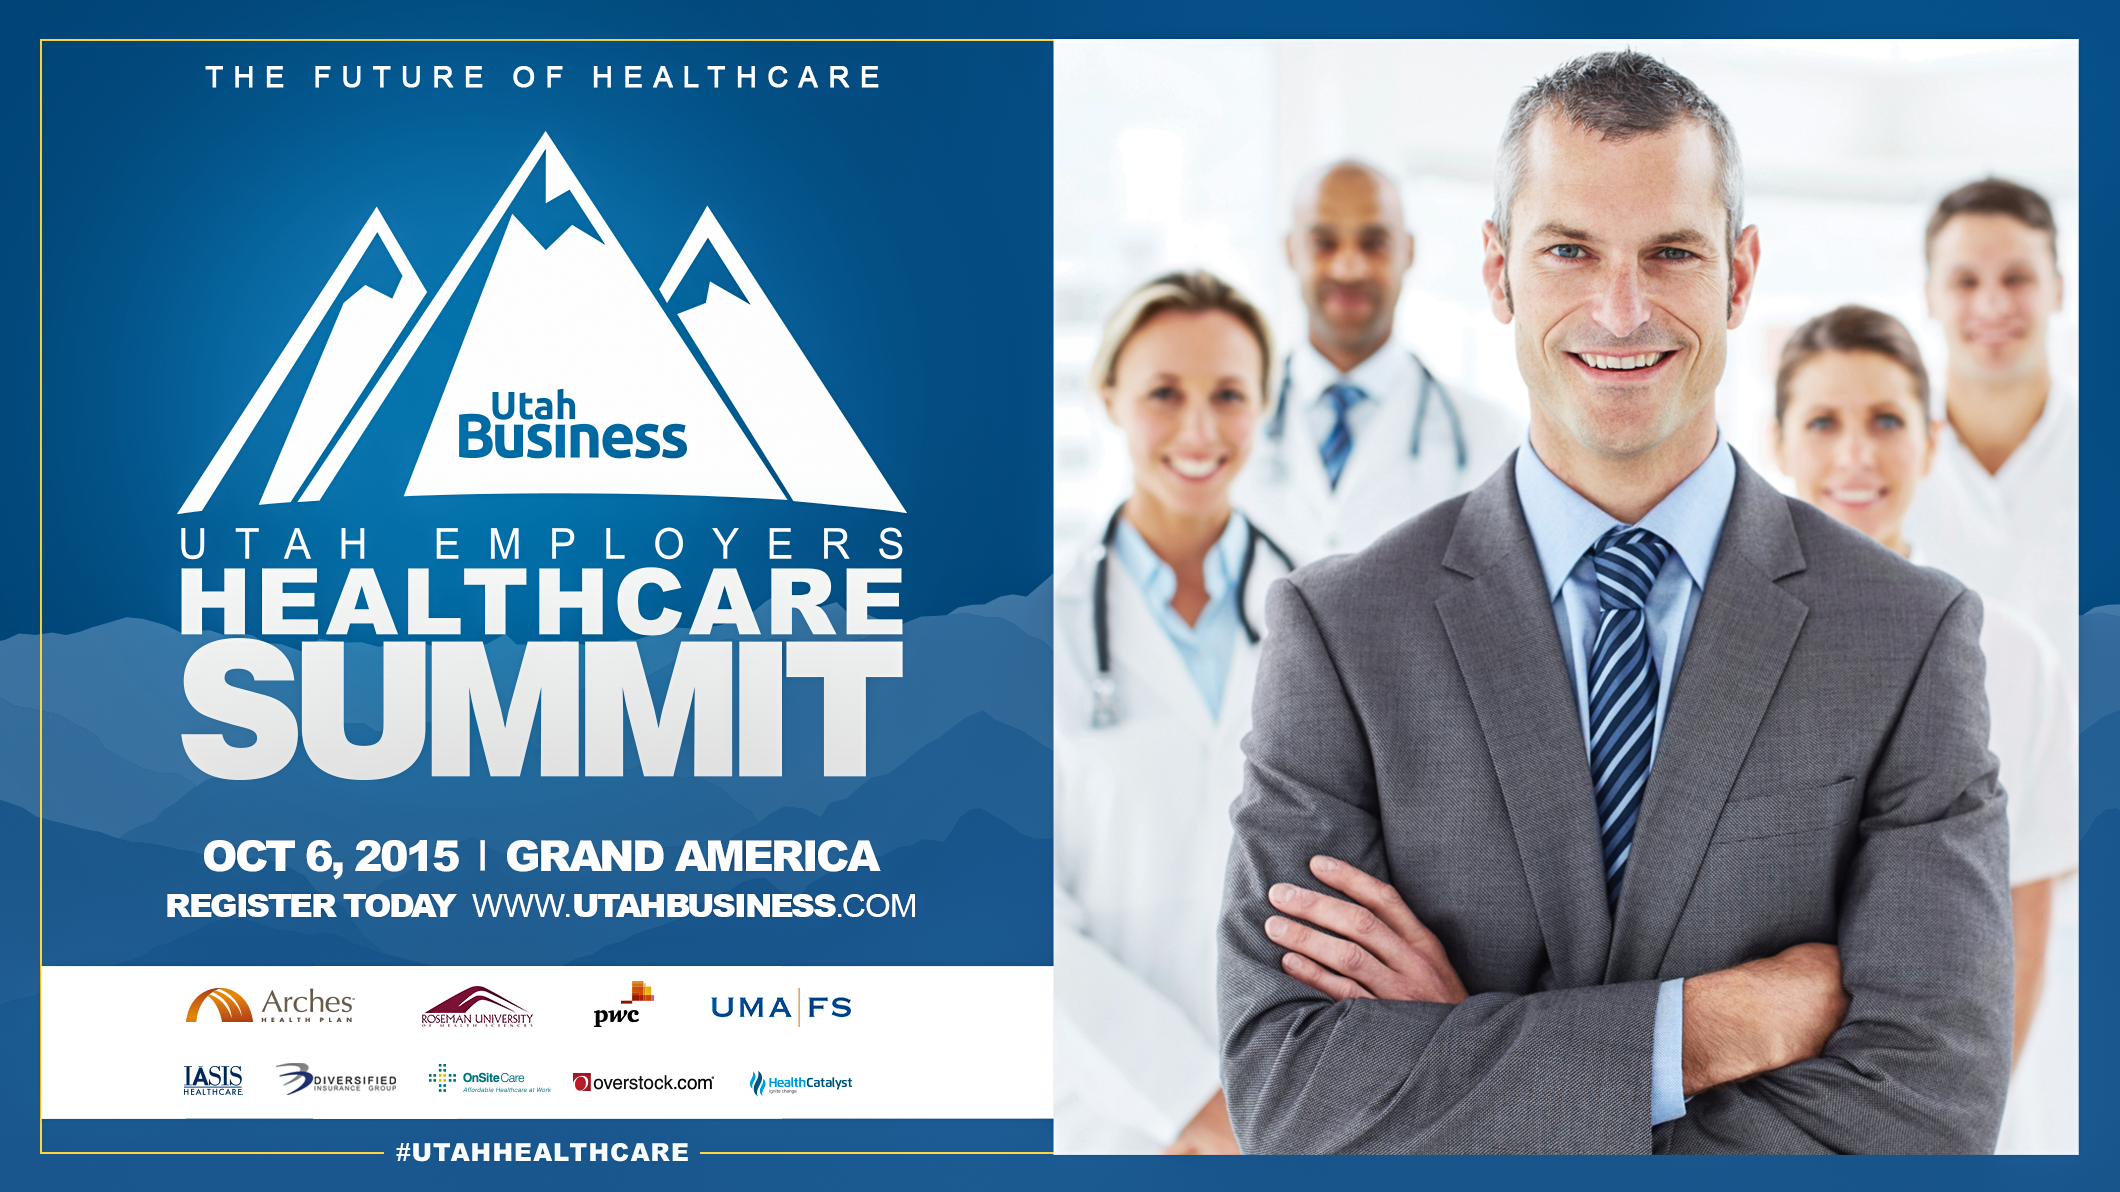 Utah Healthcare Summit - Event Details